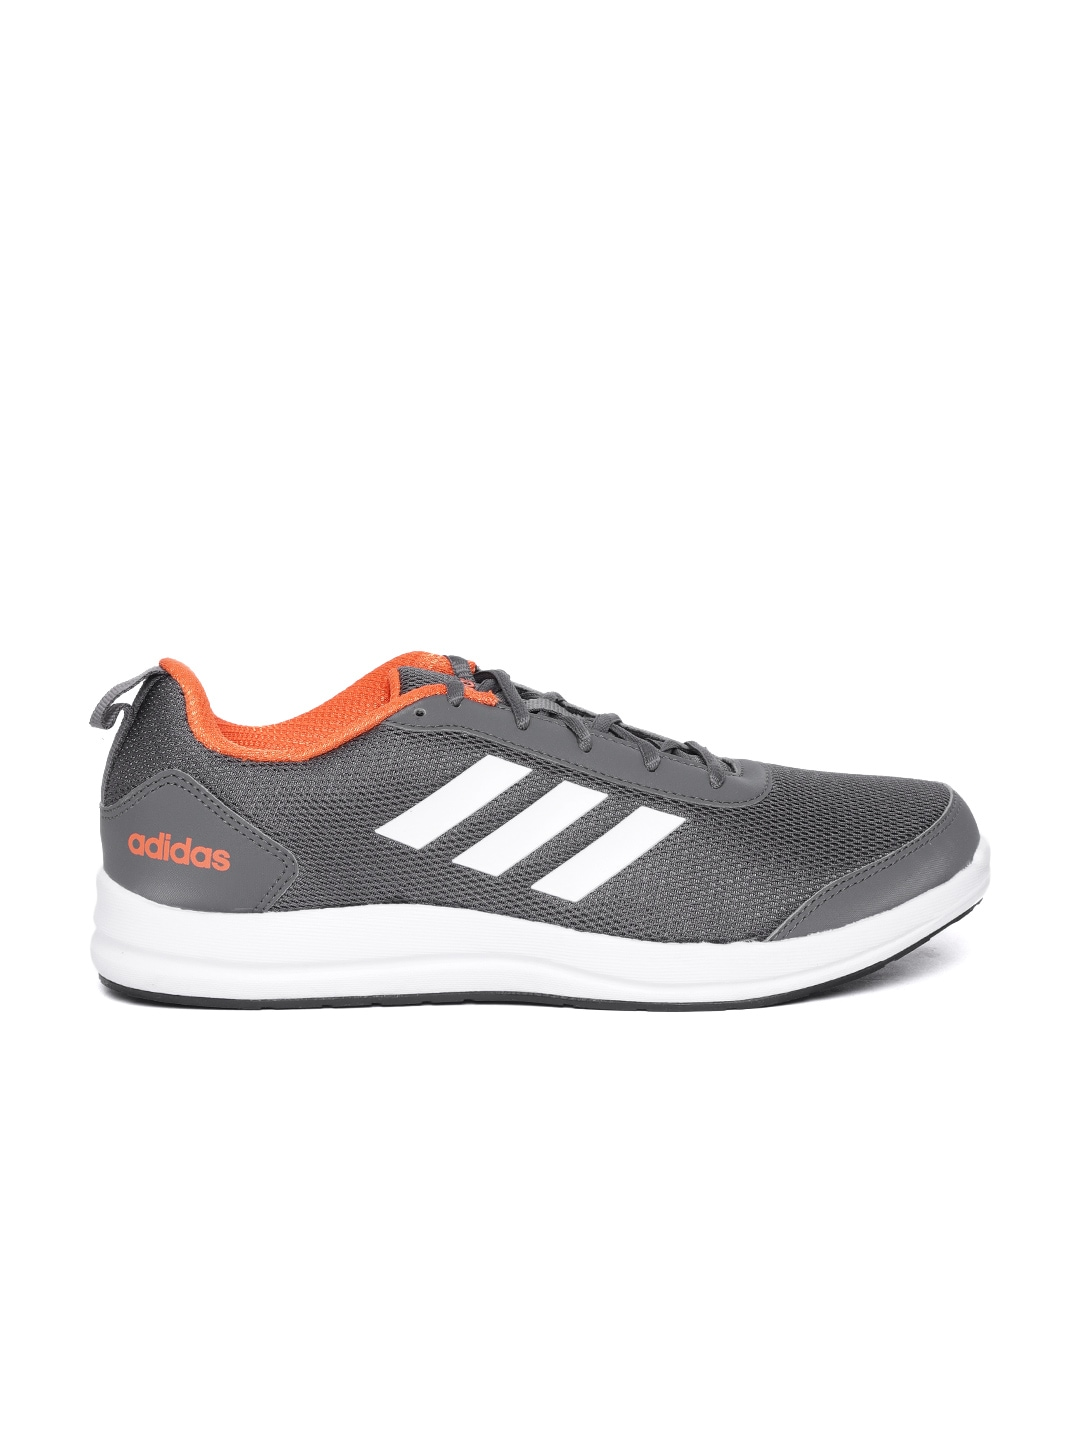 999cb46d7cc22 Mens Adidas Shoes - Buy Adidas Shoes for Men Online in India